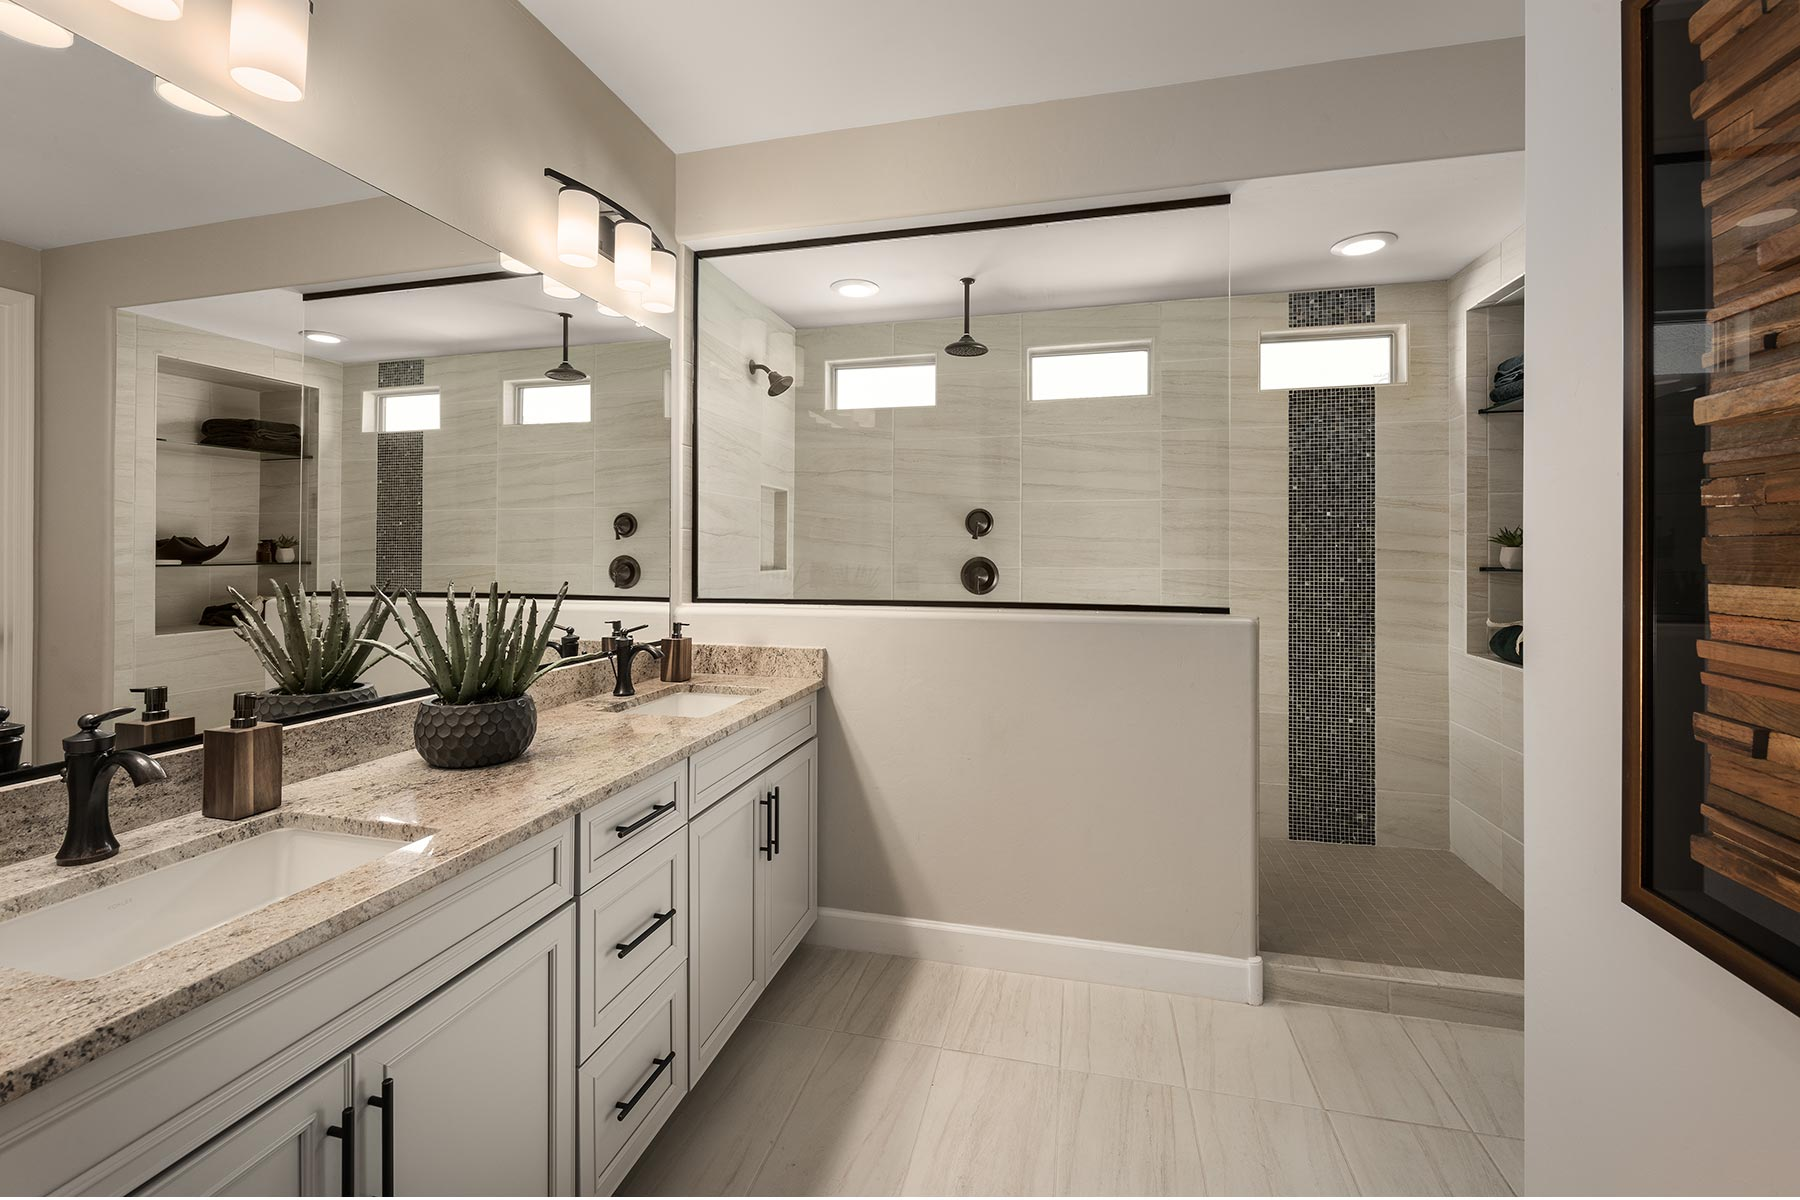 Ocotillo Plan Bathroom_Master Bath at Saguaro Trails in Tucson Arizona by Mattamy Homes